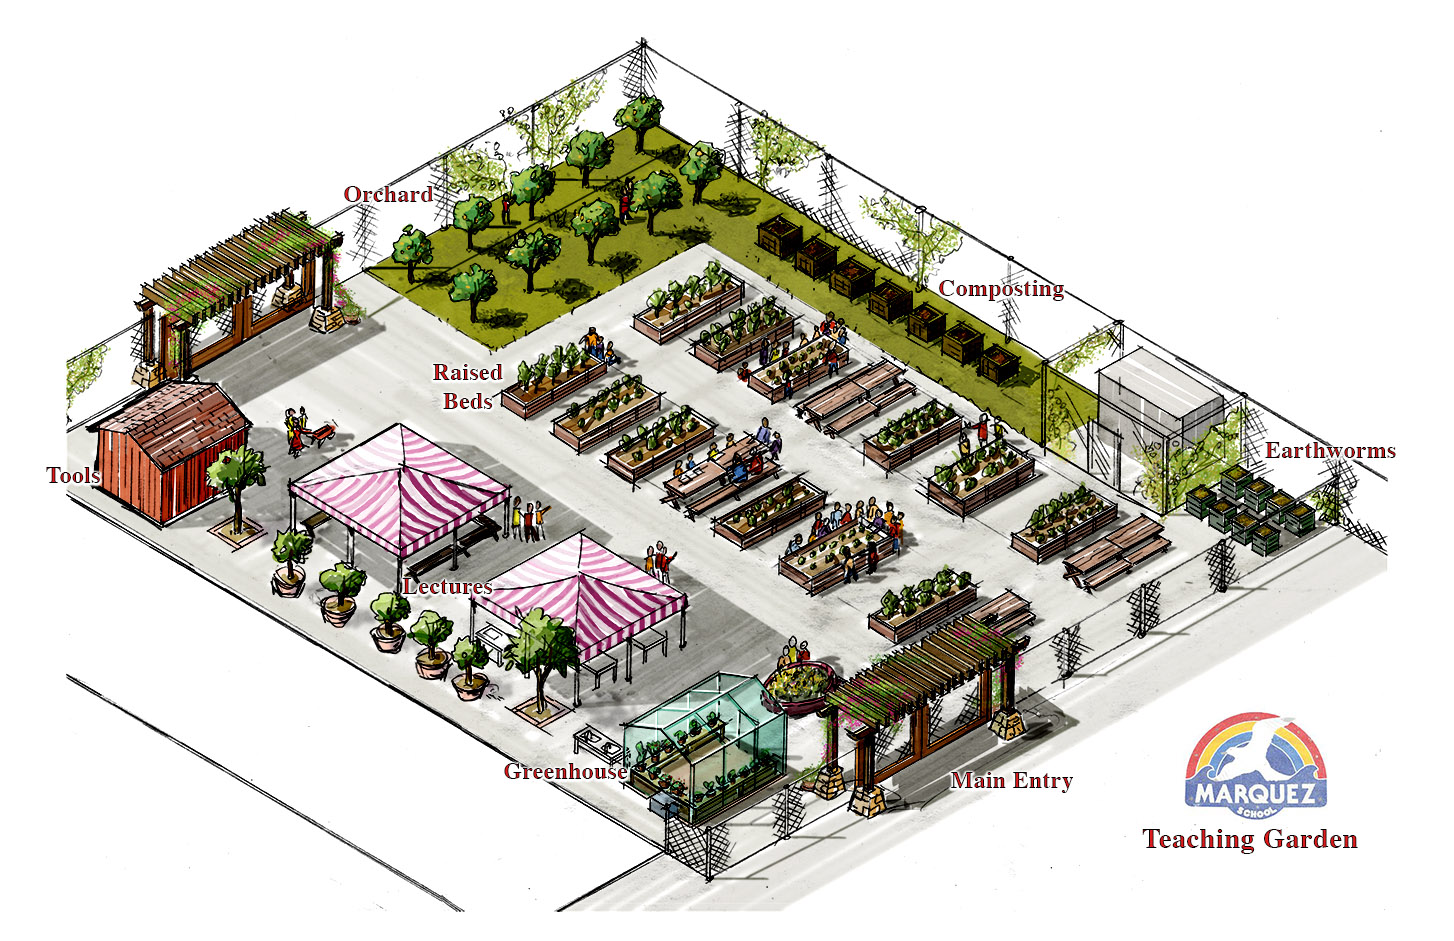 McFadden_Concept Illustration_Marquez School Teaching Garden